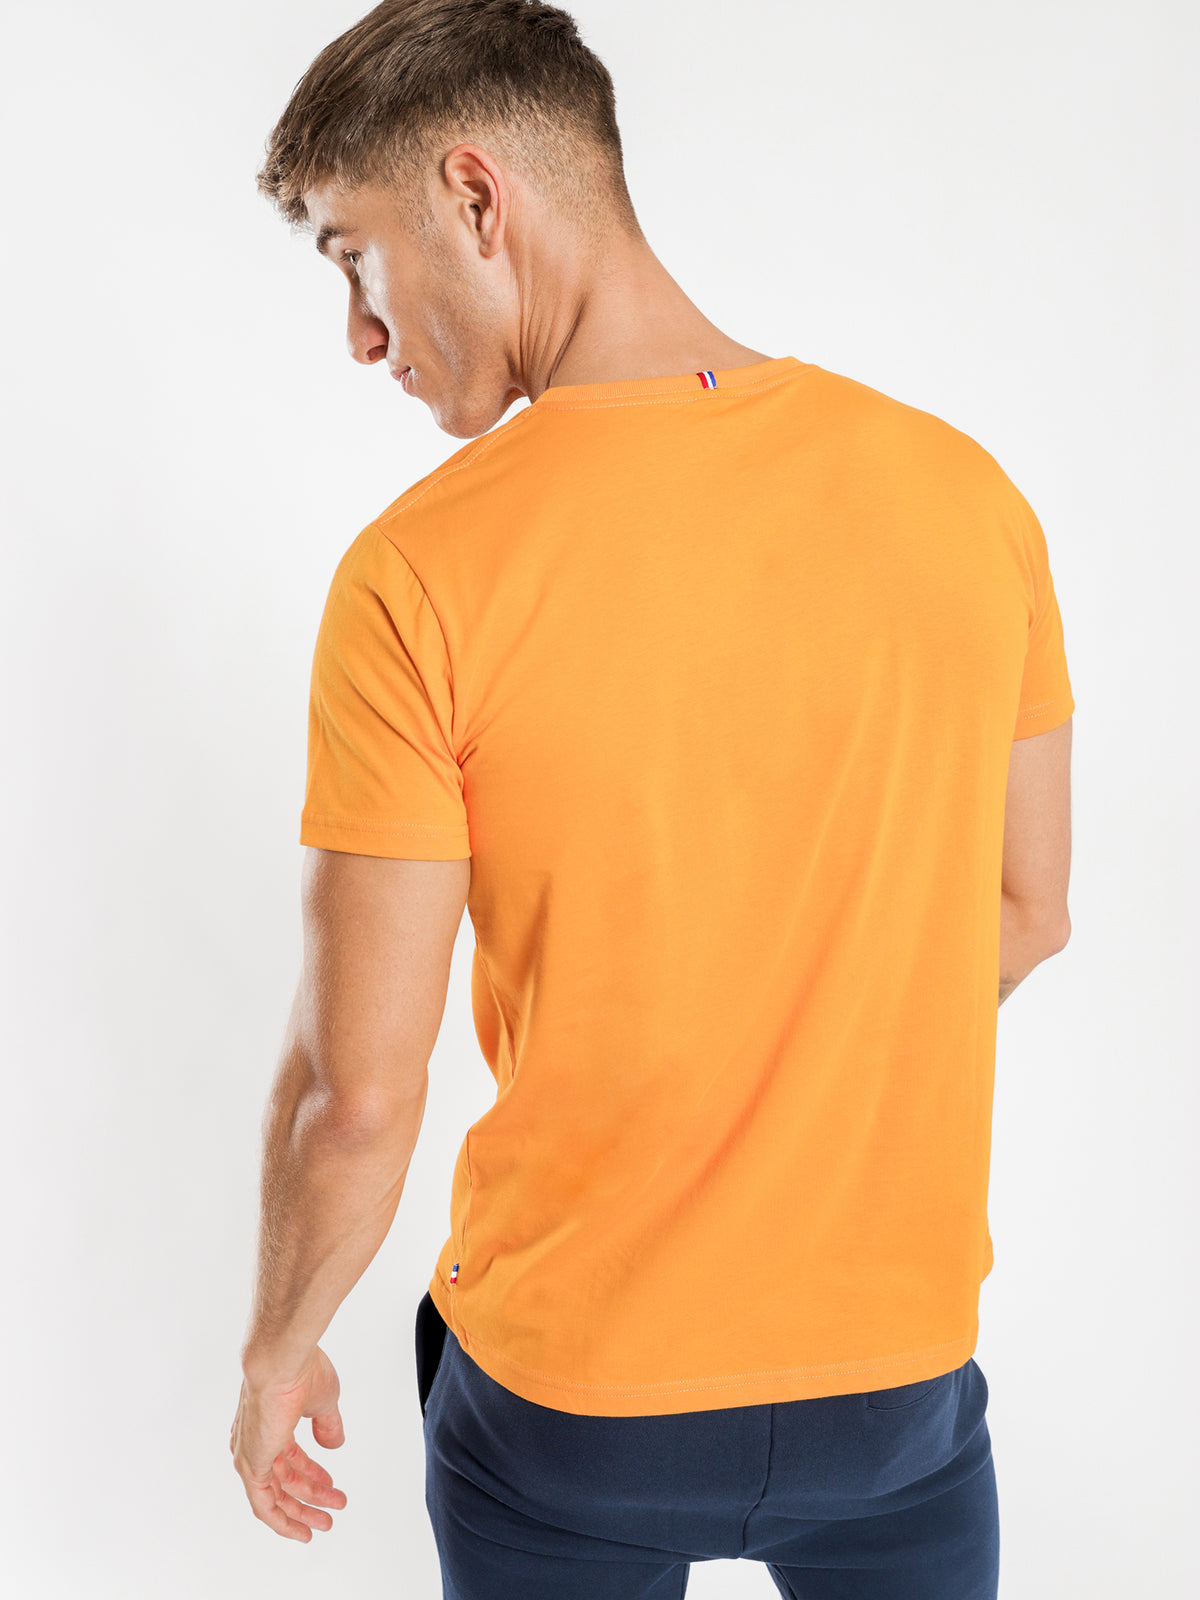 Essentiel Logo T-Shirt in Amber Orange